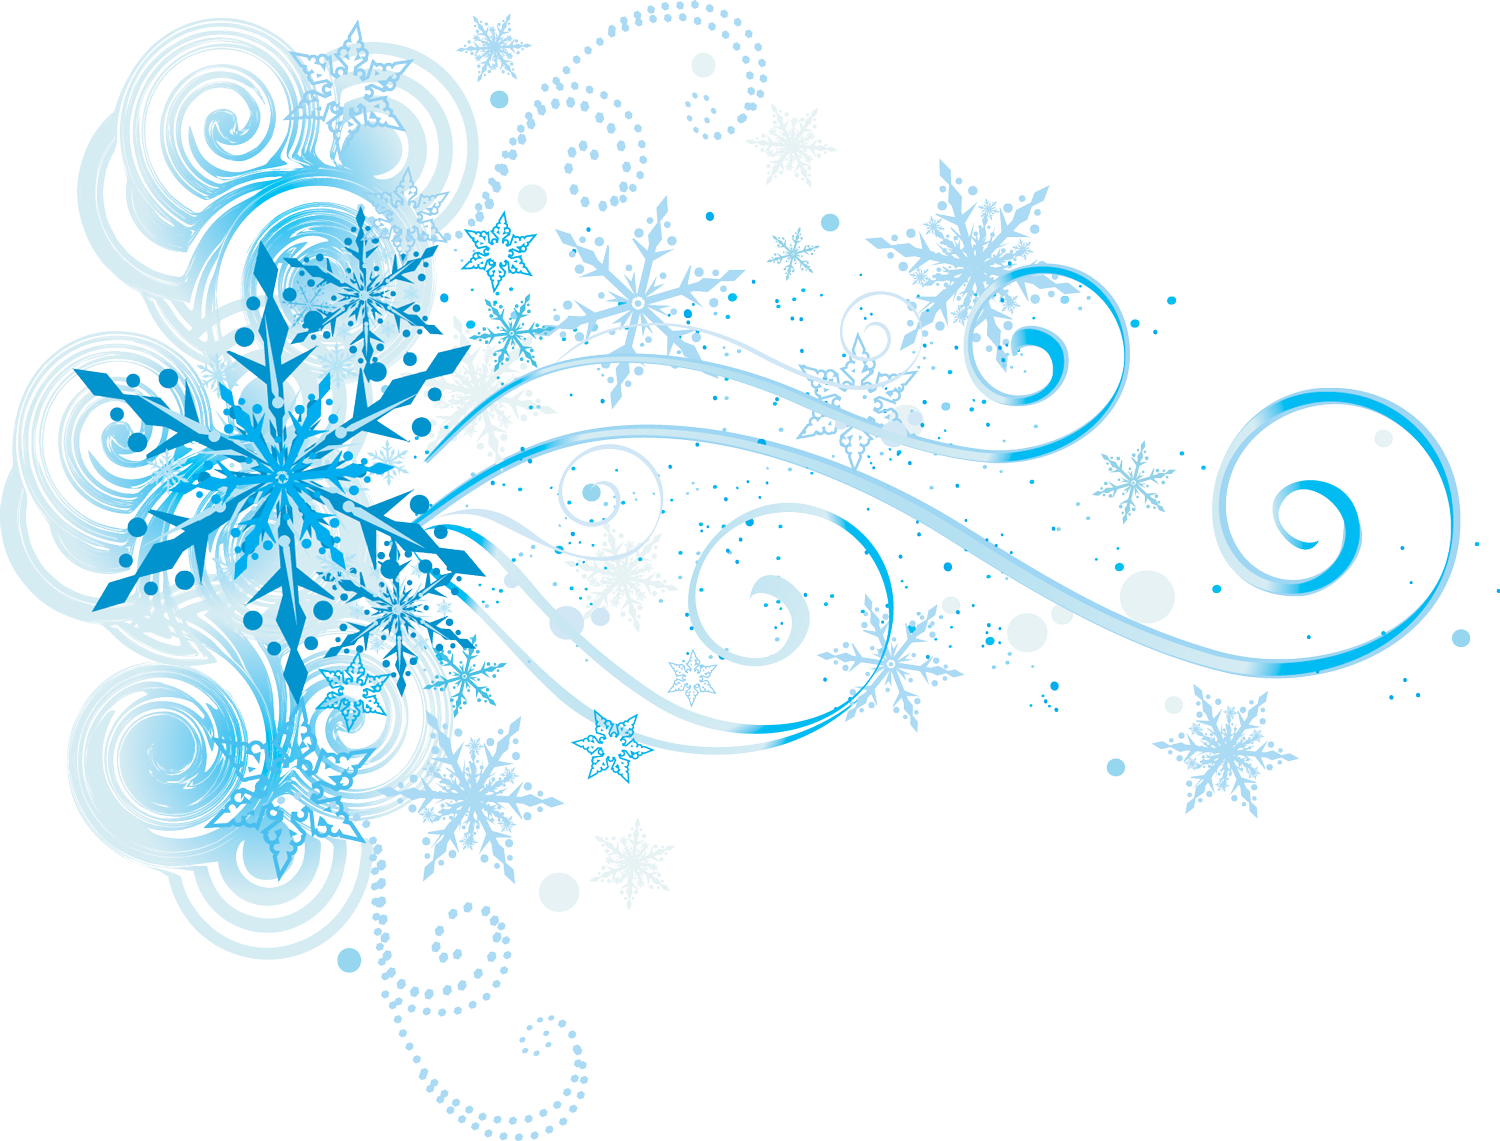 Blue snowflake outline clipart image black and white download wrap around the shoulder with ribbons flowing down the arm ... image black and white download